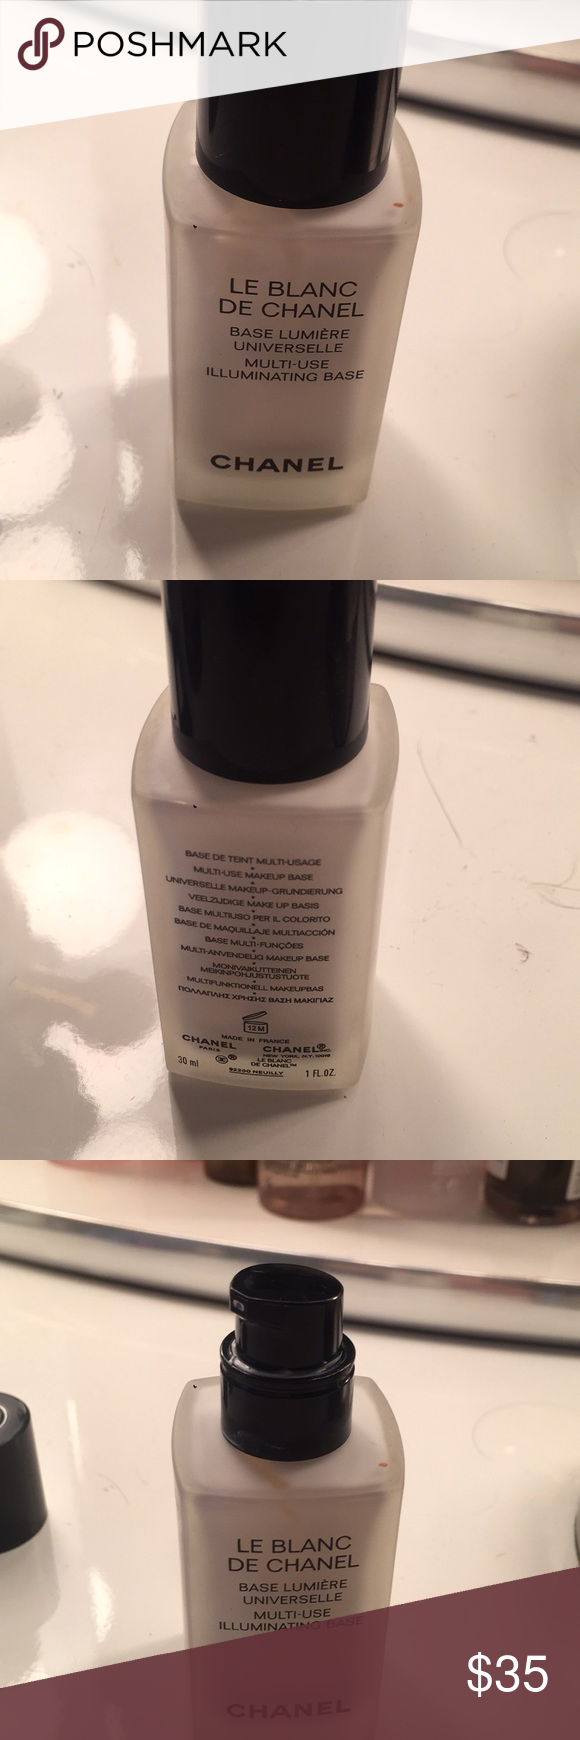 Chanel face primer This is the le bland de Chanel base